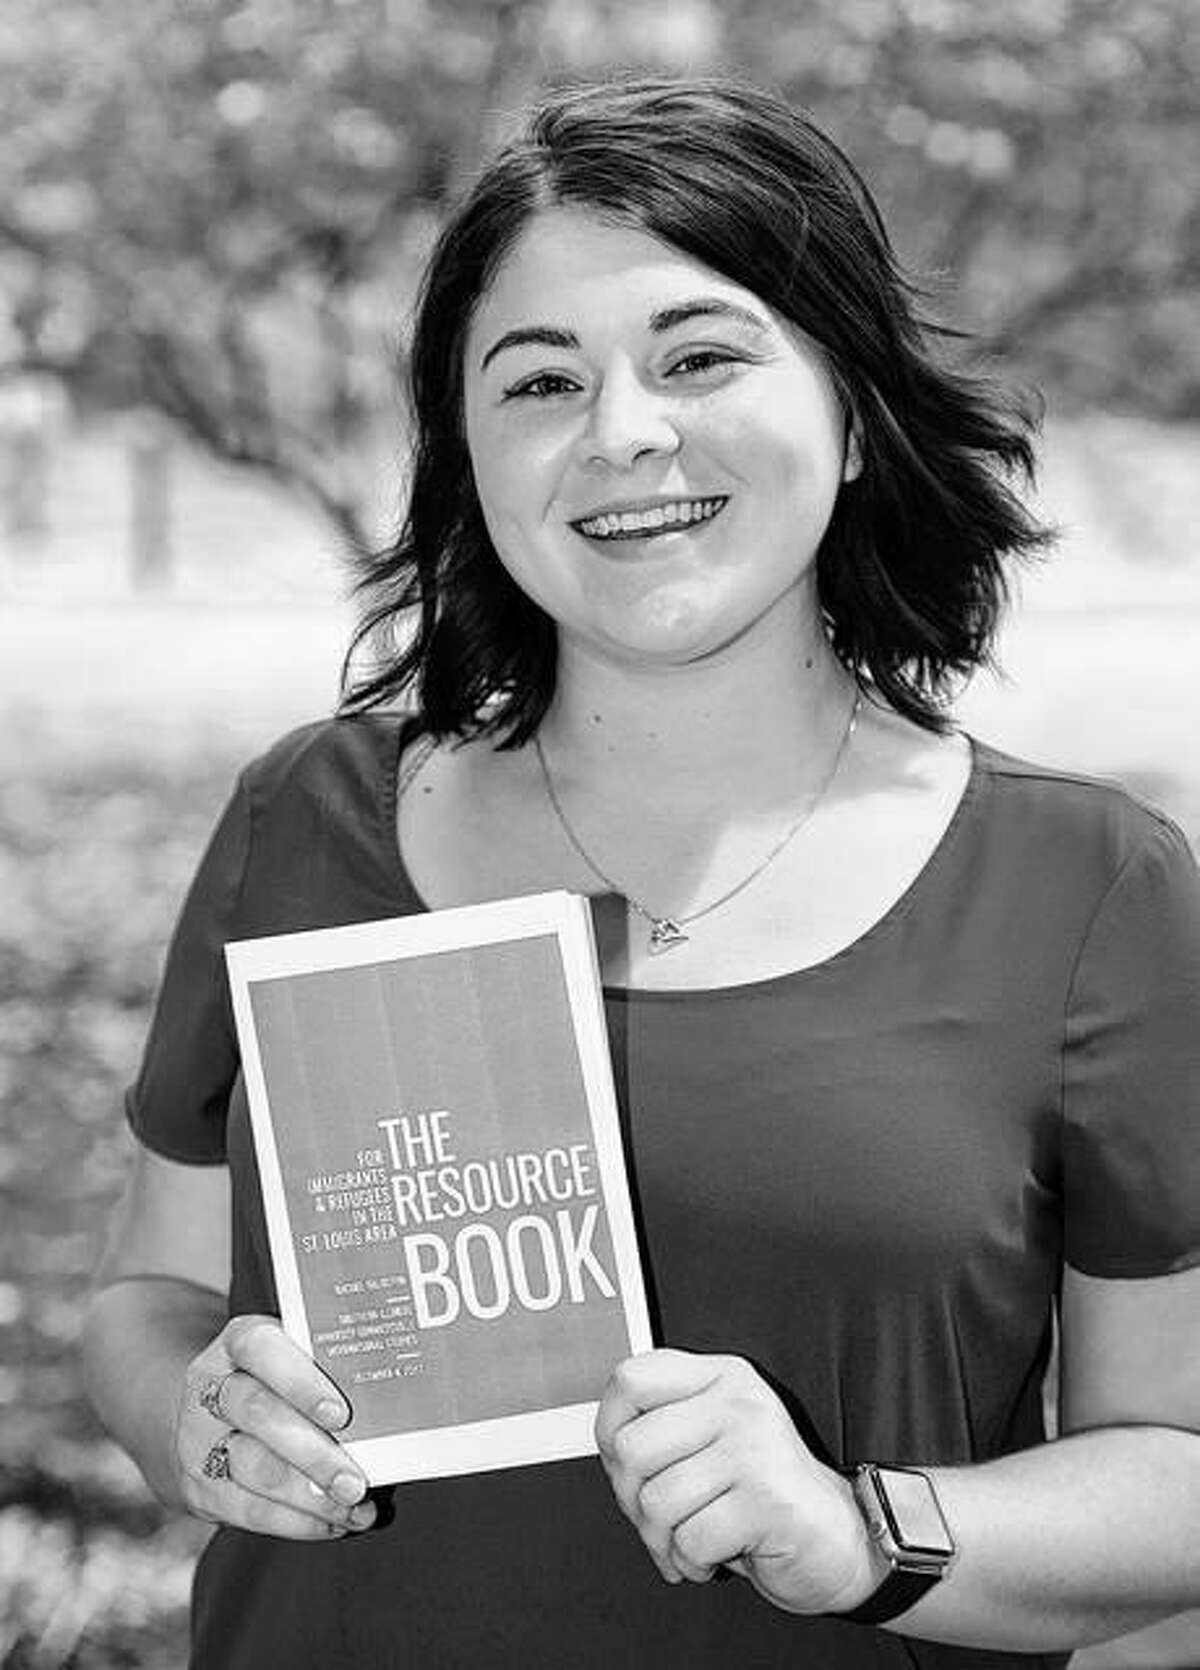 Rachel Thurston, the first graduate of SIUE's undergraduate international studies program, holds the resource book she created for area immigrants and refugees. She will earn her bachelor's on Saturday, Dec. 16 during SIUE's Fall 2017 commencement ceremony.